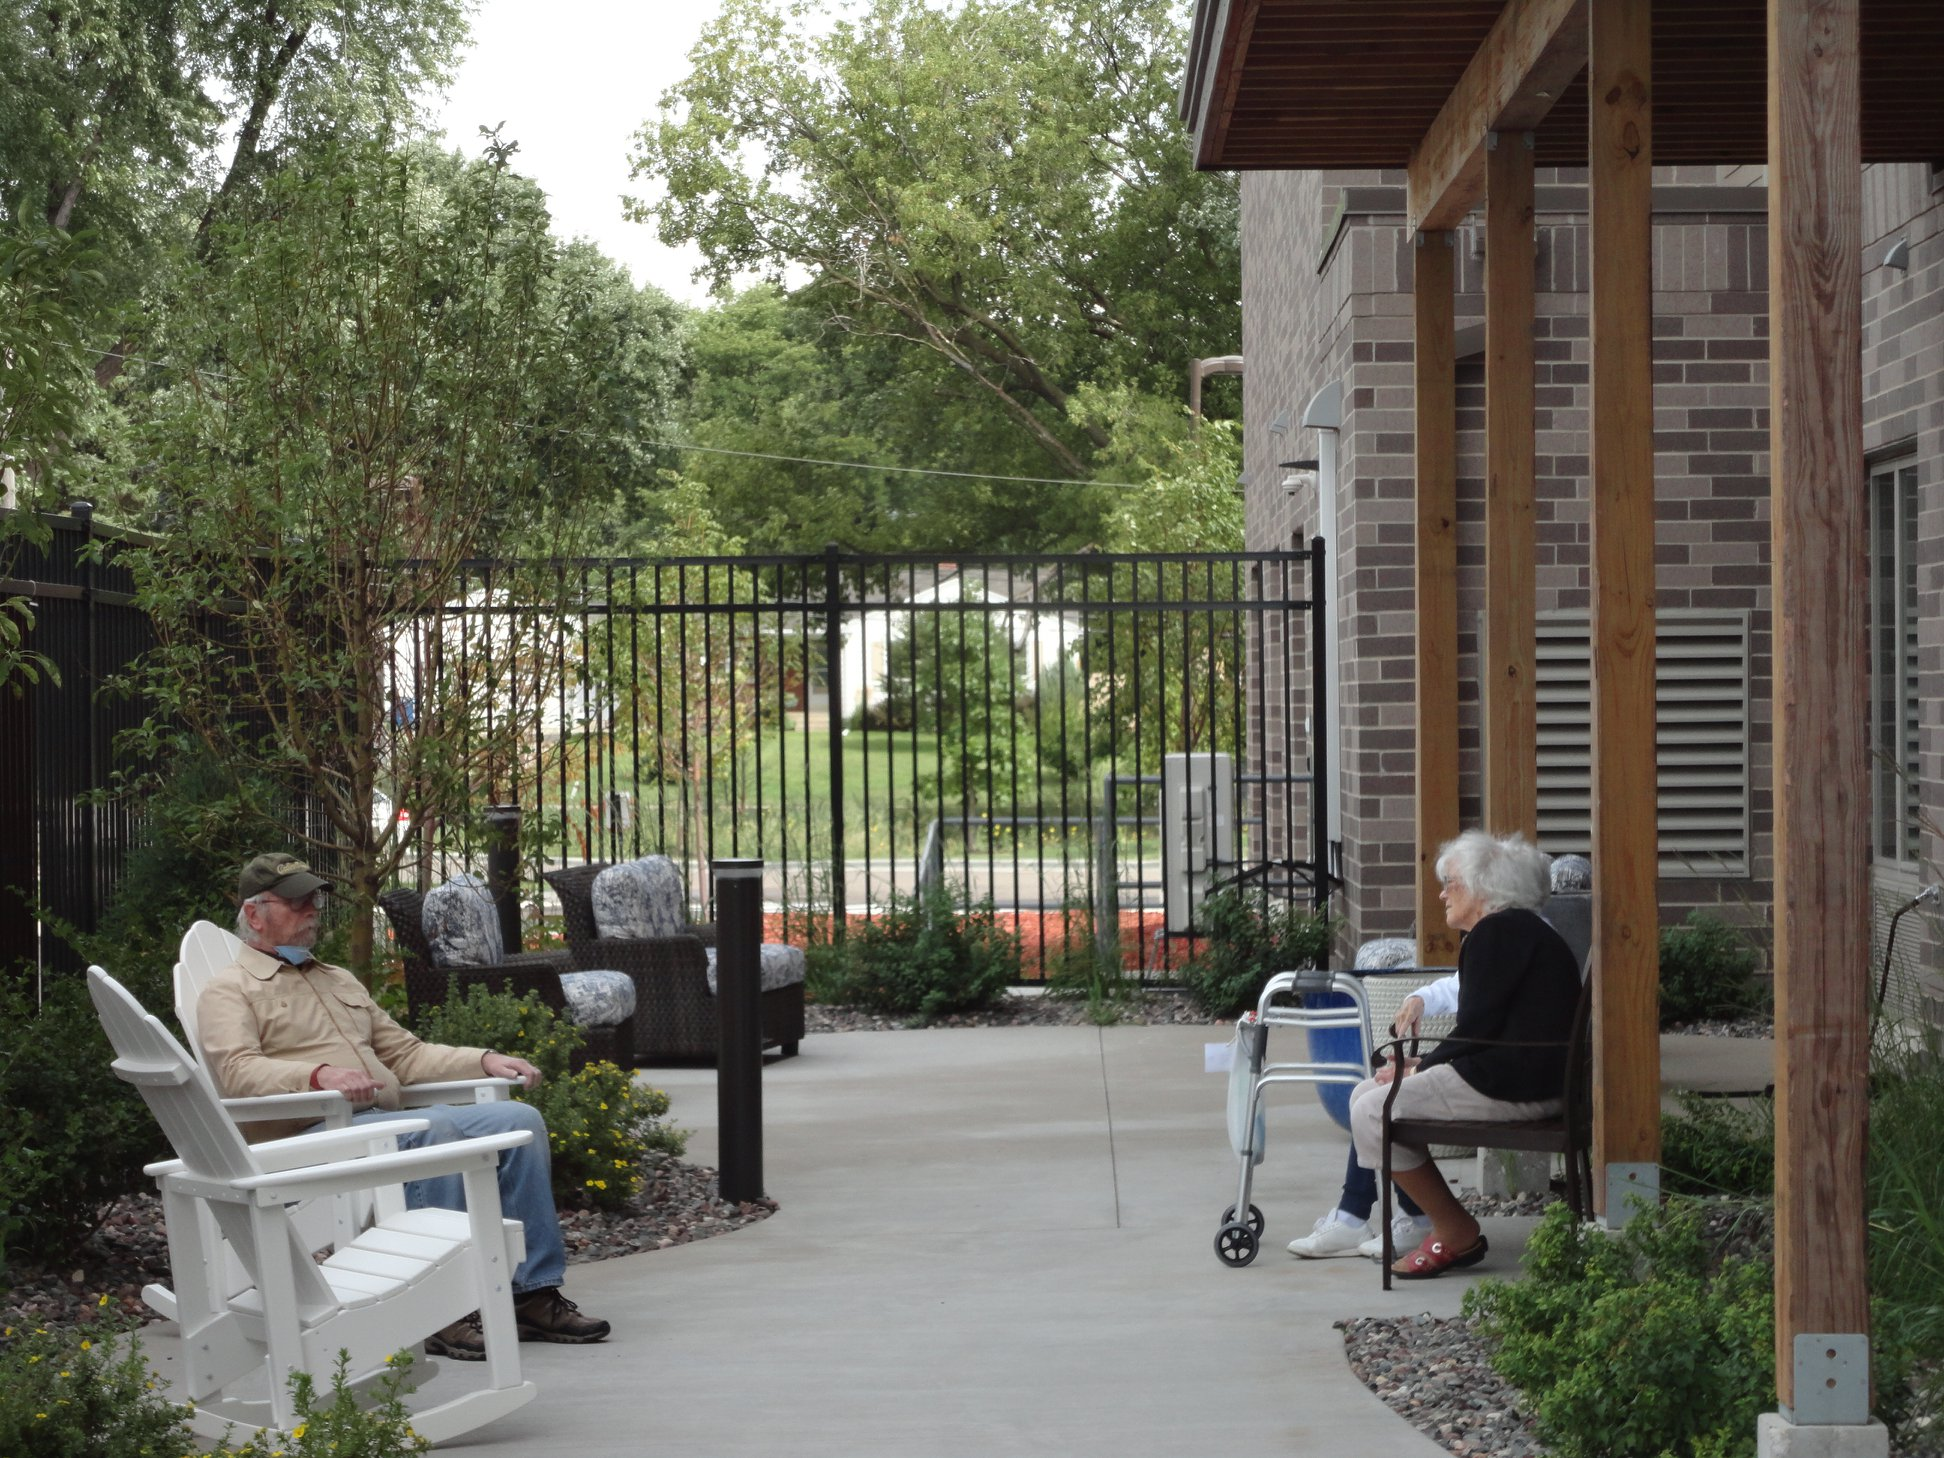 Senior living facility apartments outdoors woman and man sitting on patio minnesota